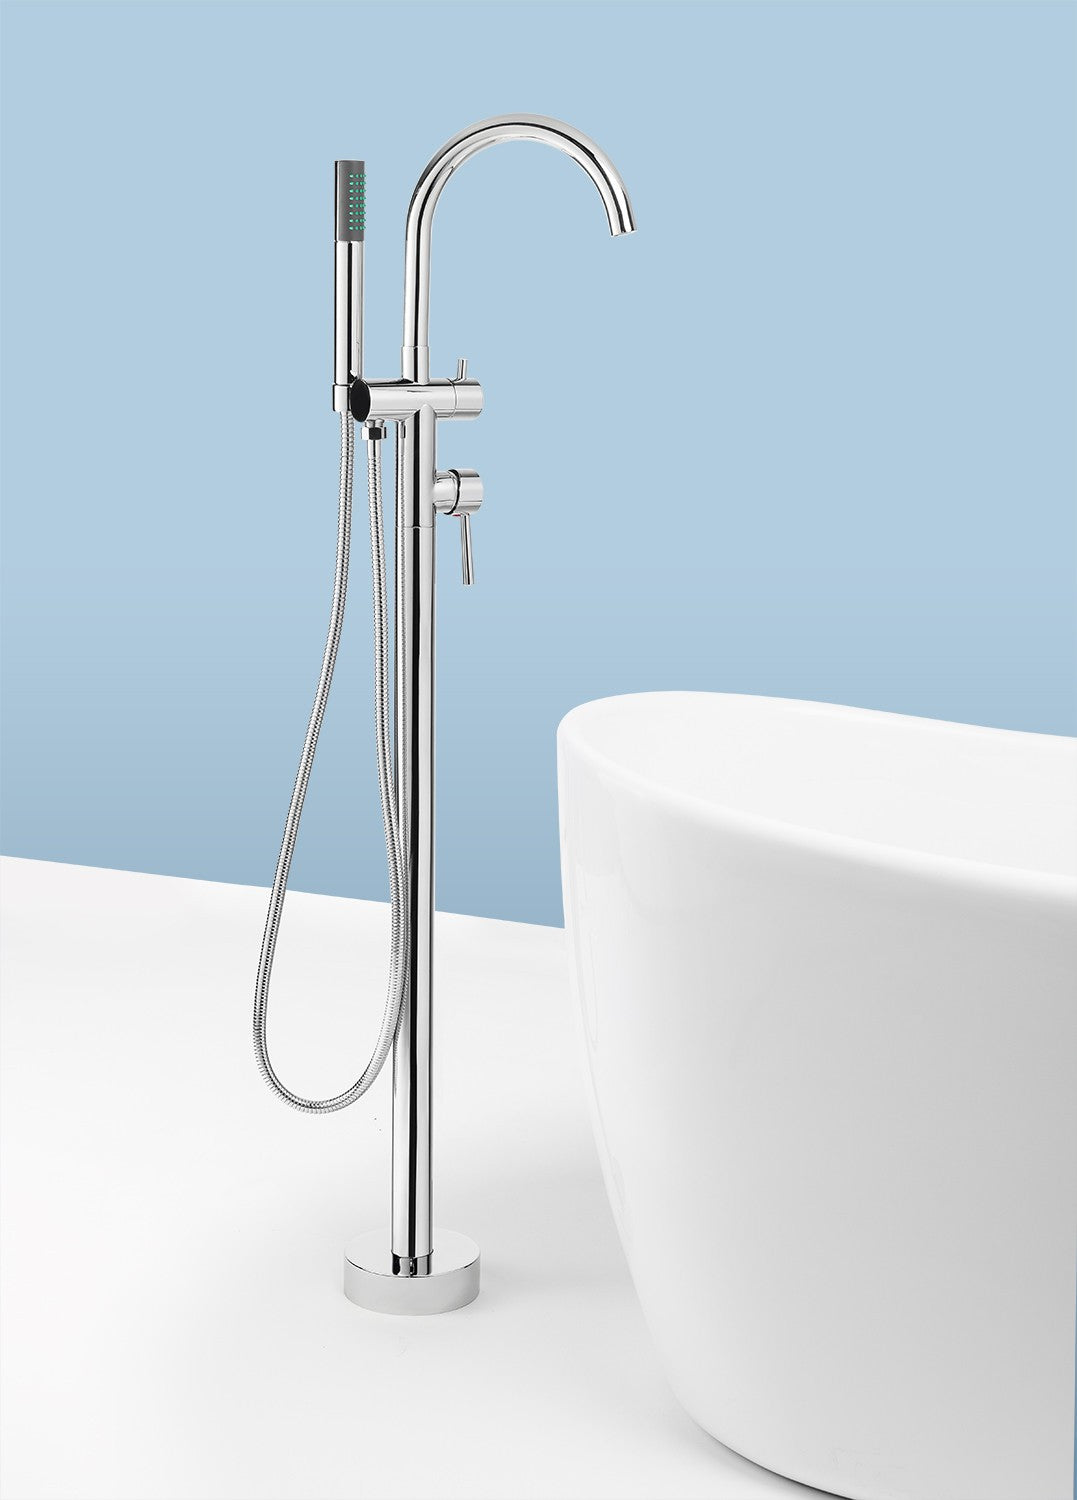 AKDY Freestanding Tub Filler Faucet | AZ-8723 – RainShowersDirect.com